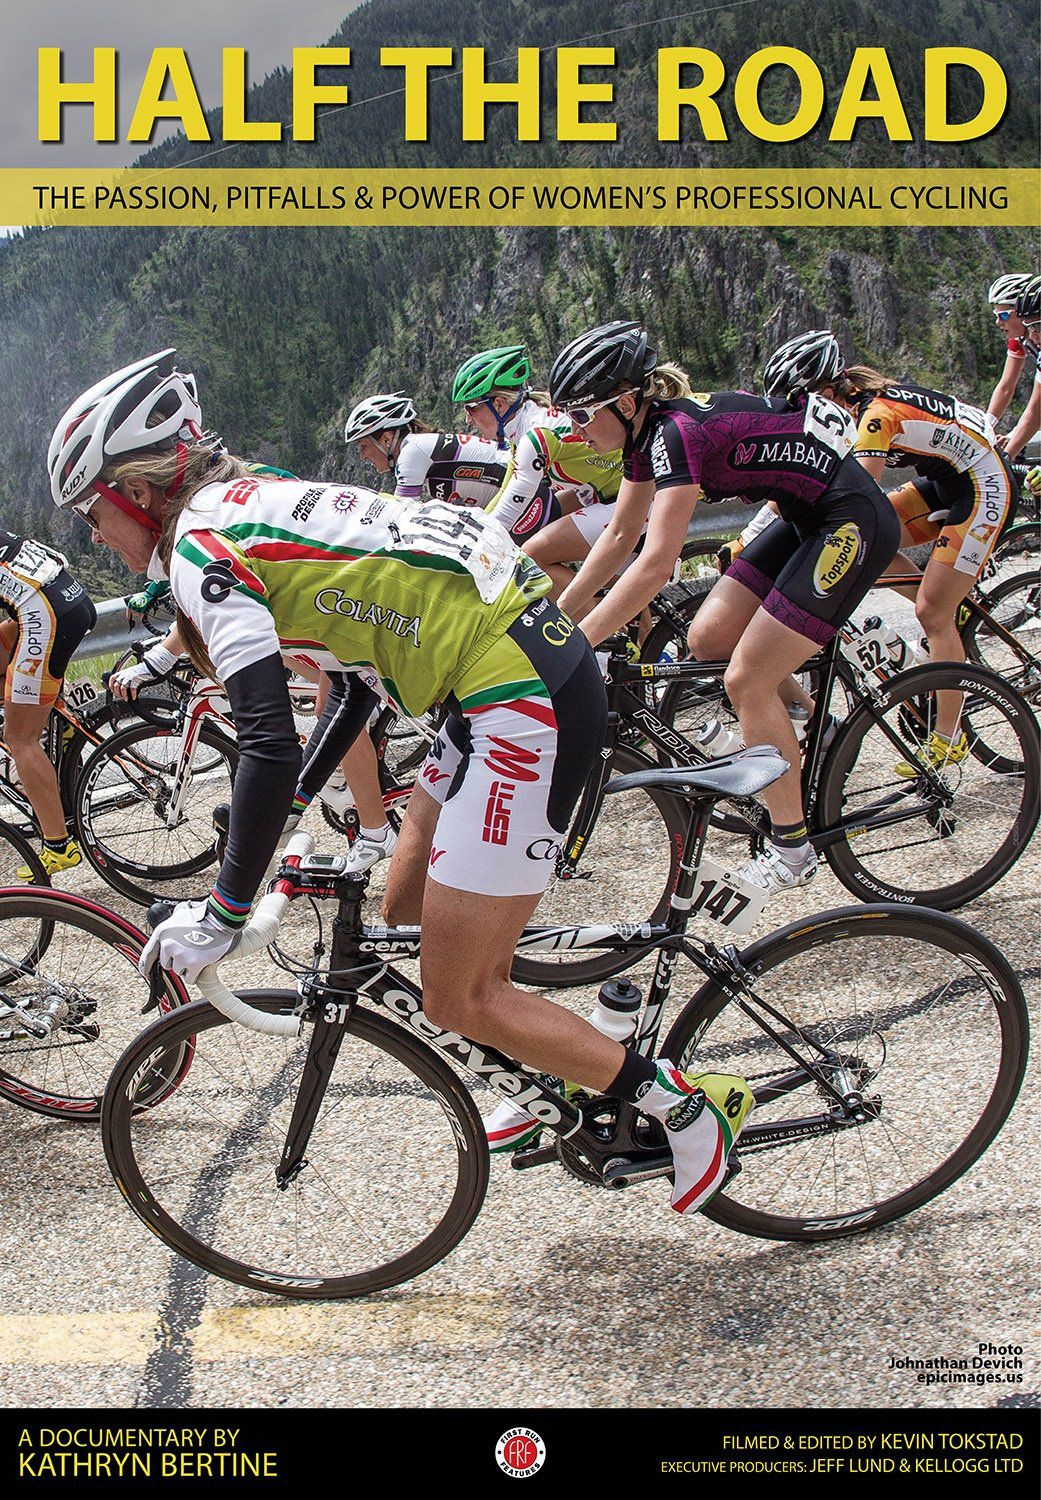 Half The Road: The Passion, Pitfalls & Power of Women's Professional Cycling - Documentaire (2014)